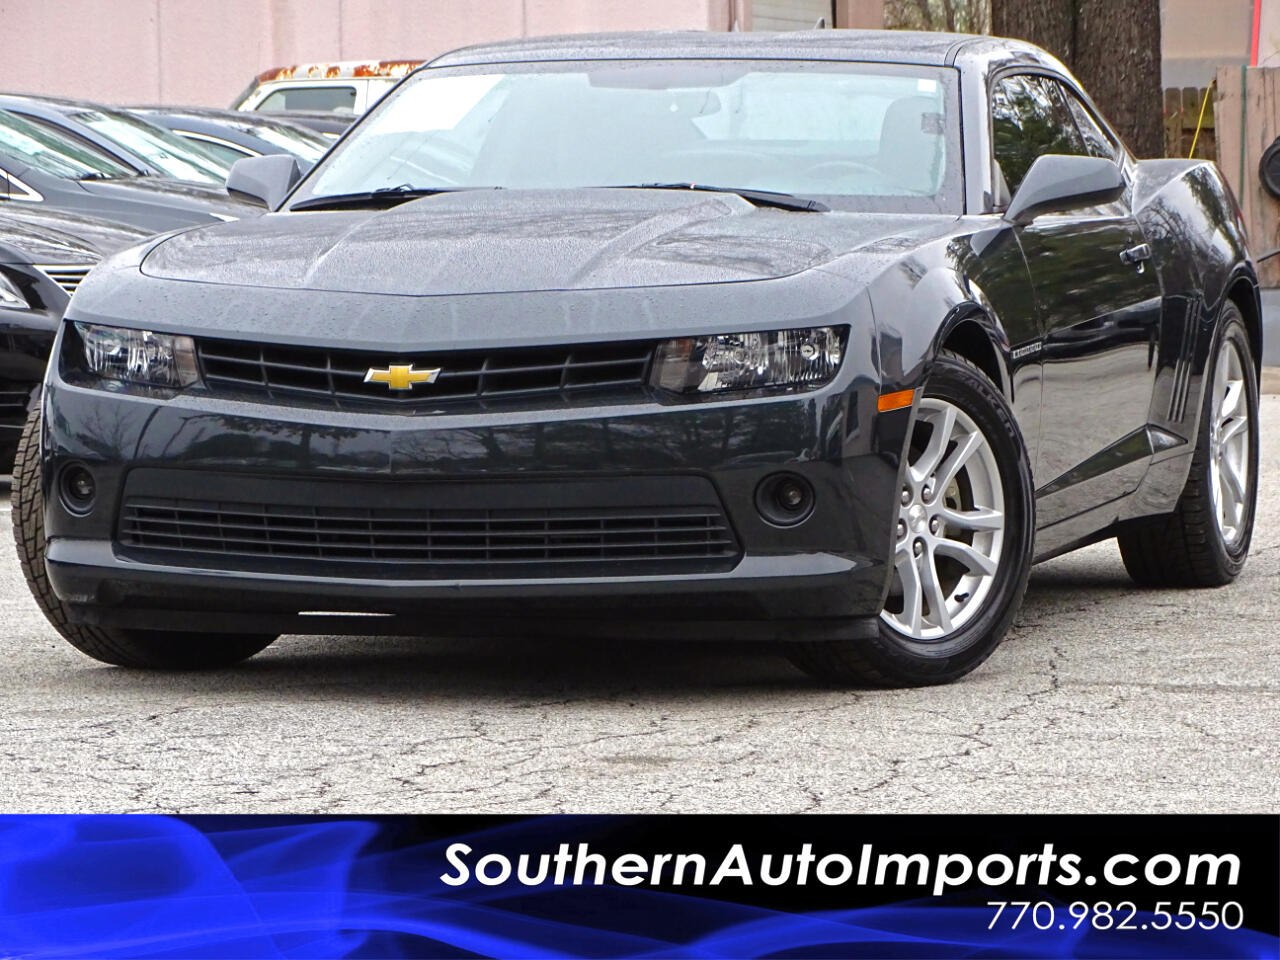 2014 Chevrolet Camaro 1 LT w/Paddle Shifter Bluetooth Connection